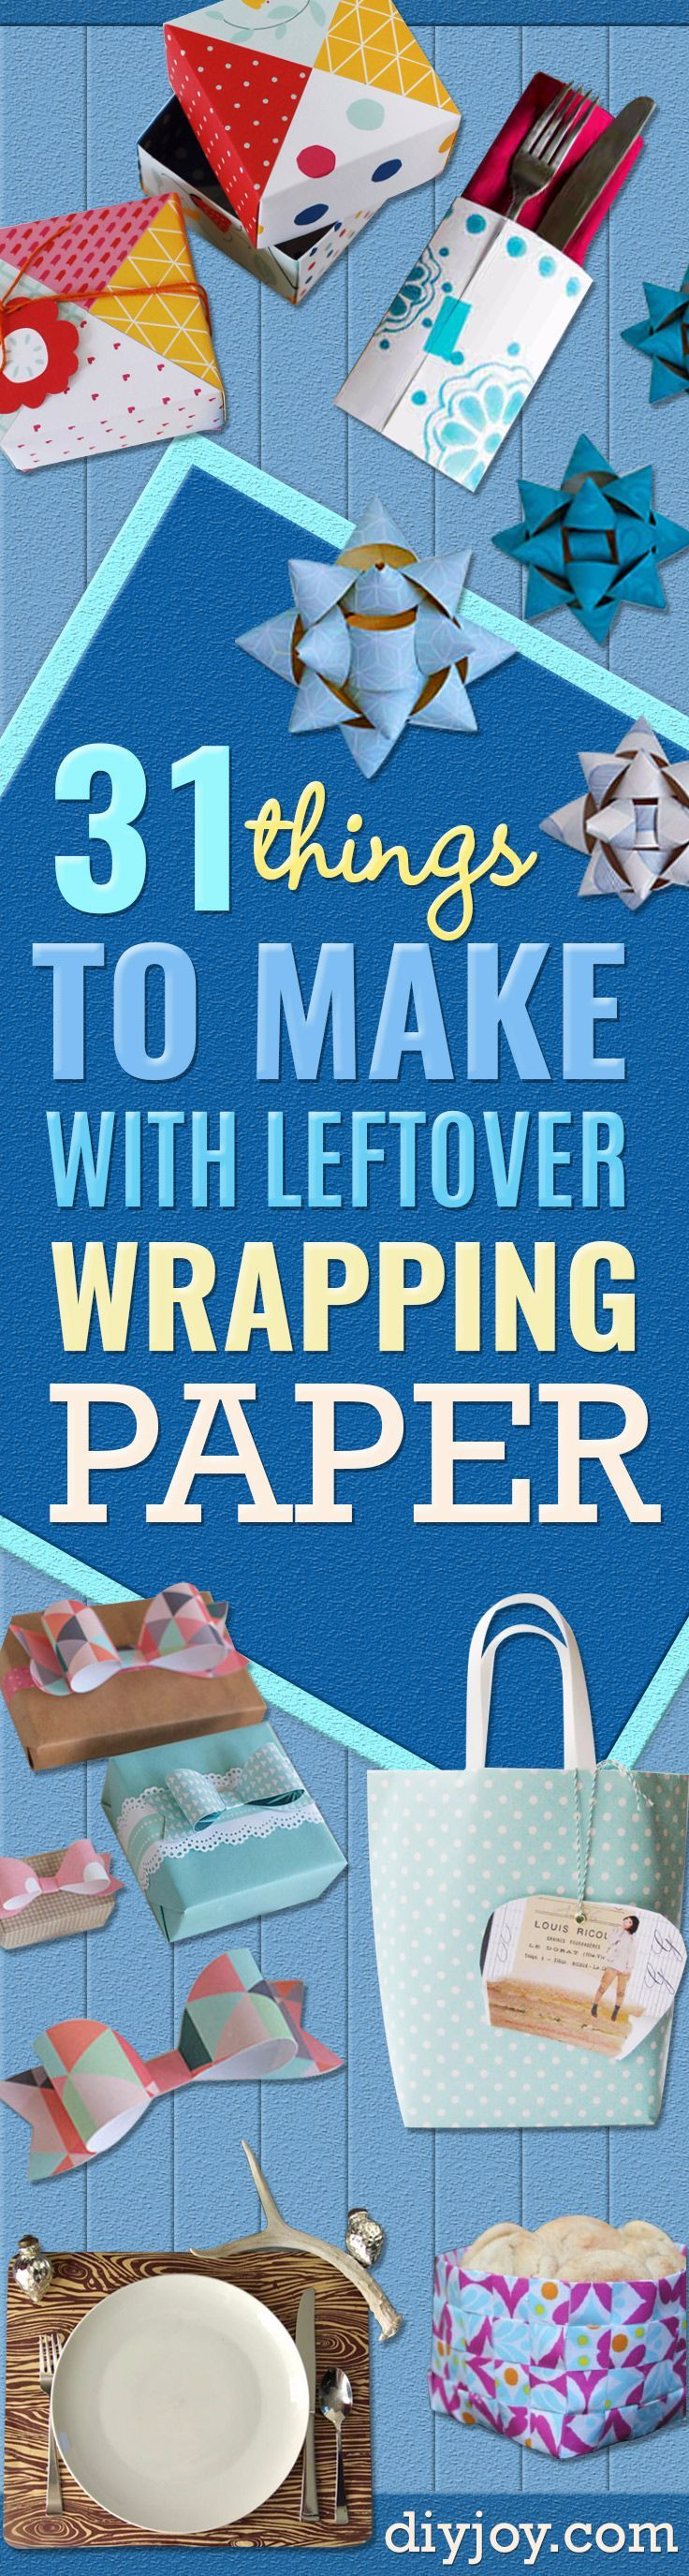 The pin junkie how to make paper bluebonnets - 31 Things To Make With Leftover Wrapping Paper